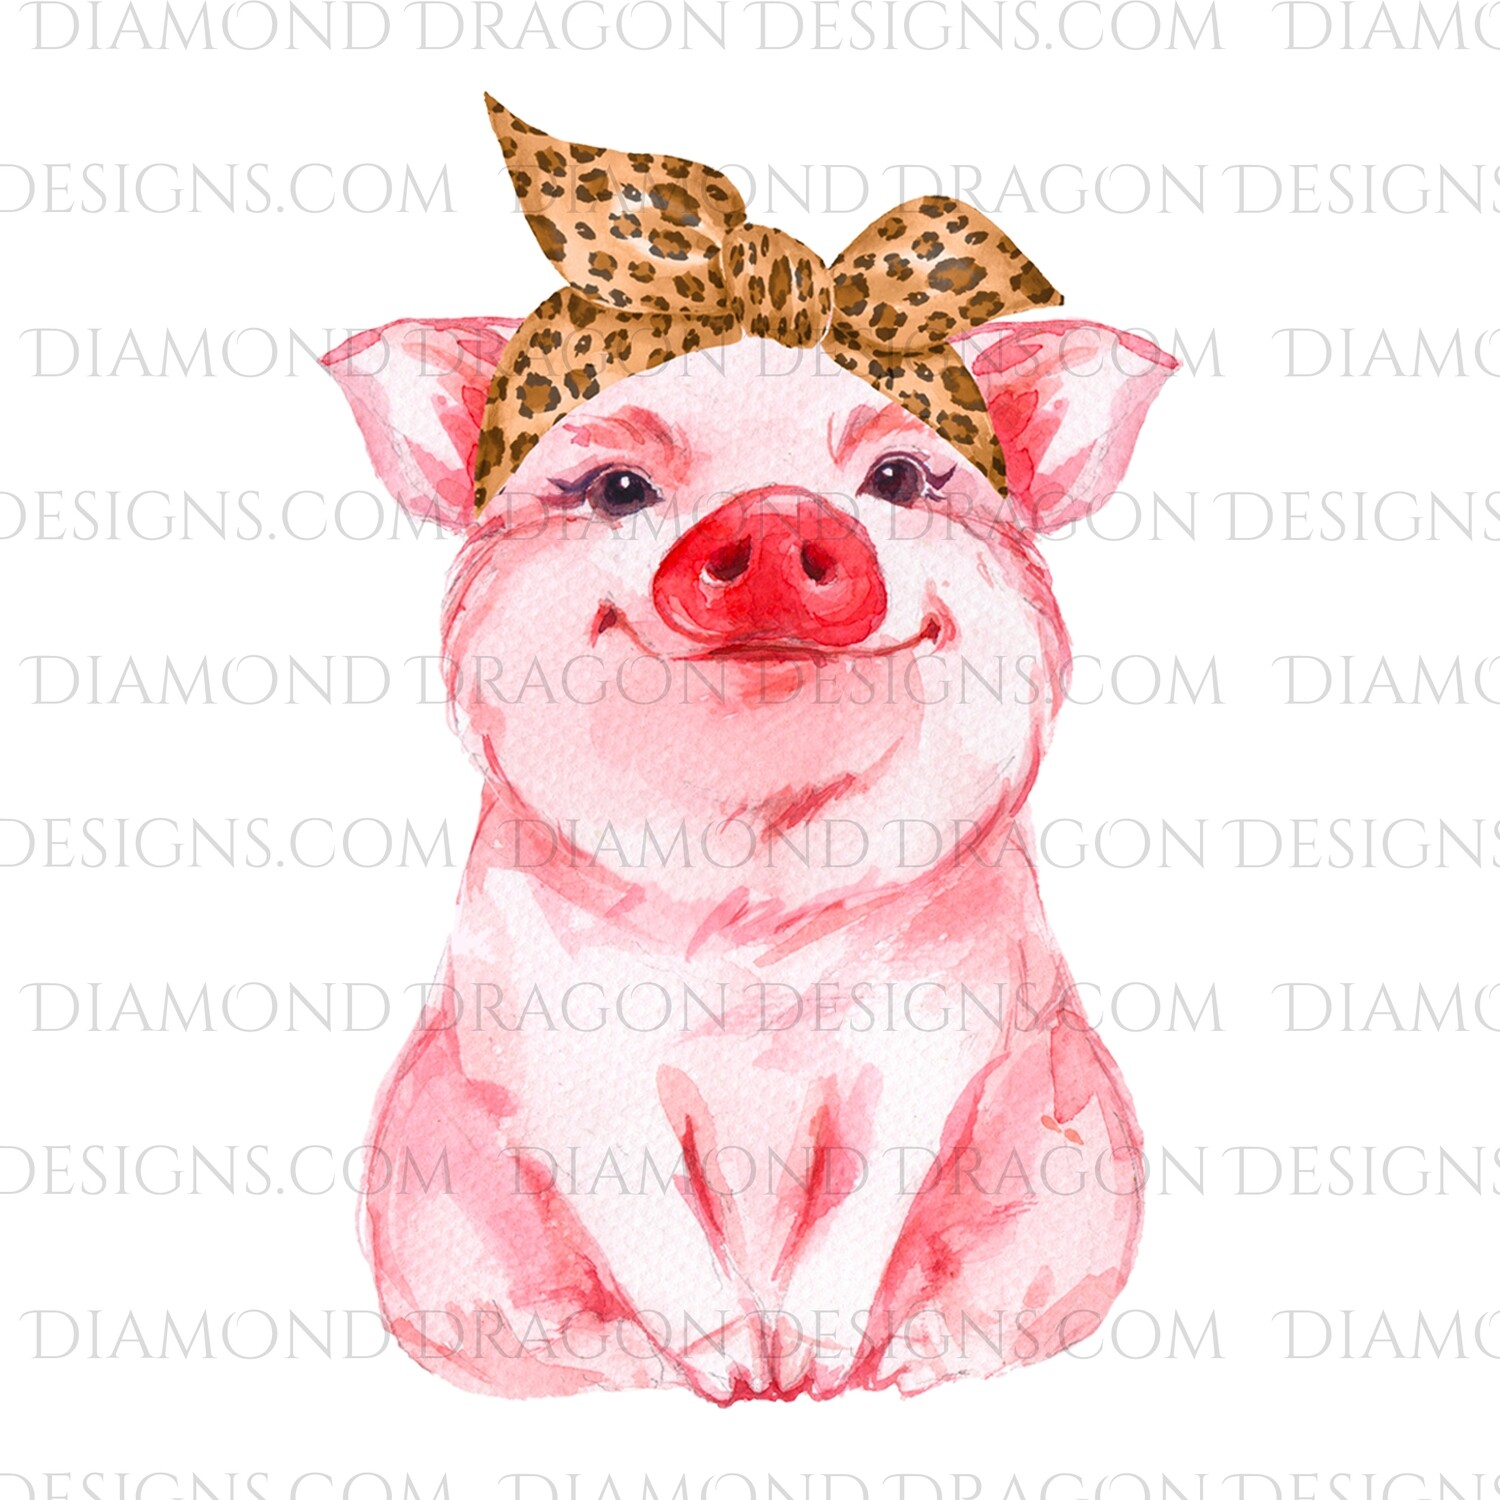 Animals - Cute Pig, Leopard Print Bandana, Waterslide